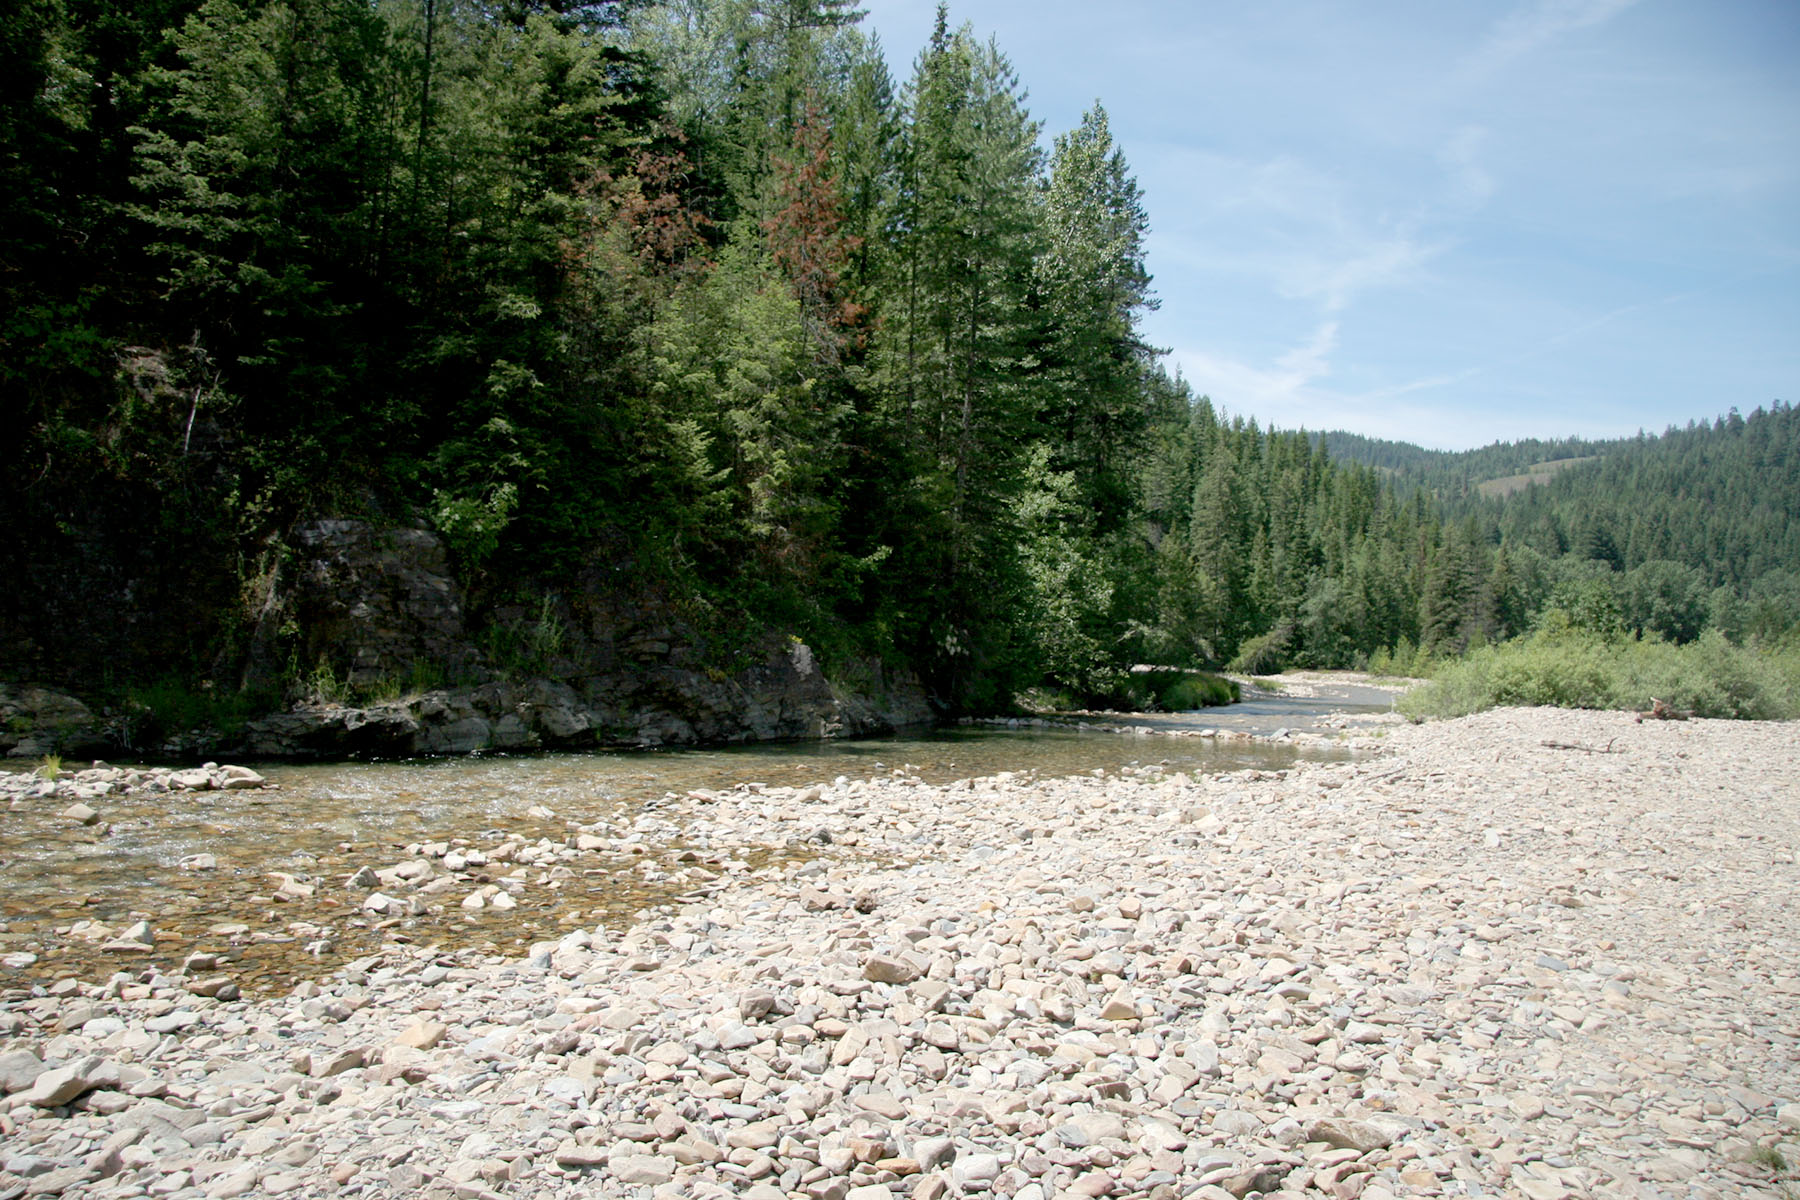 Terreno por un Venta en About 280' of beautiful, fishable Pine Creek NNA 2 East Fork Pine Creek Rd Pinehurst, Idaho, 83850 Estados Unidos